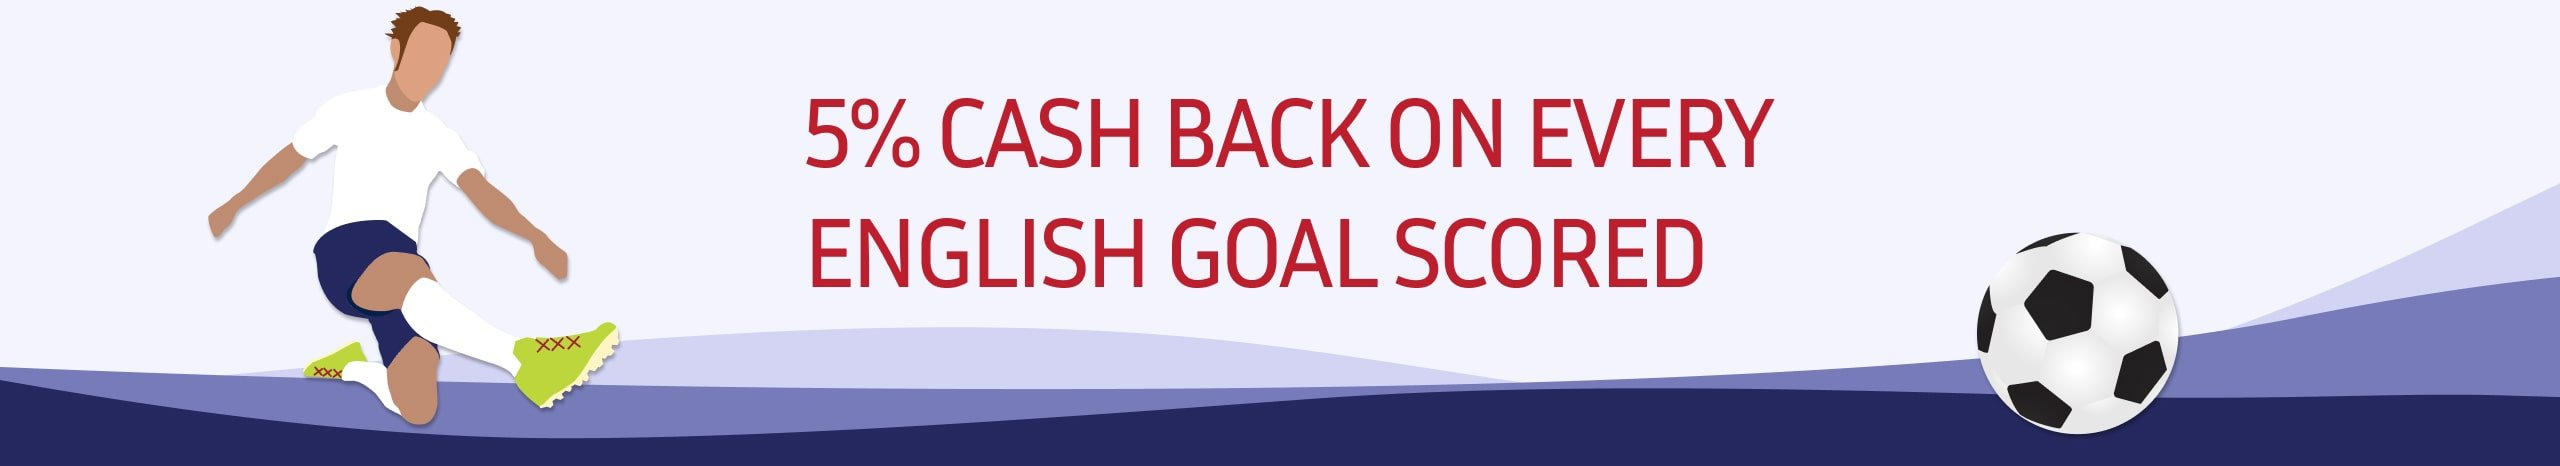 5% Cash Back up to £100 in Games Bonus for every goal scored by the English national team. Let's play & support the team!